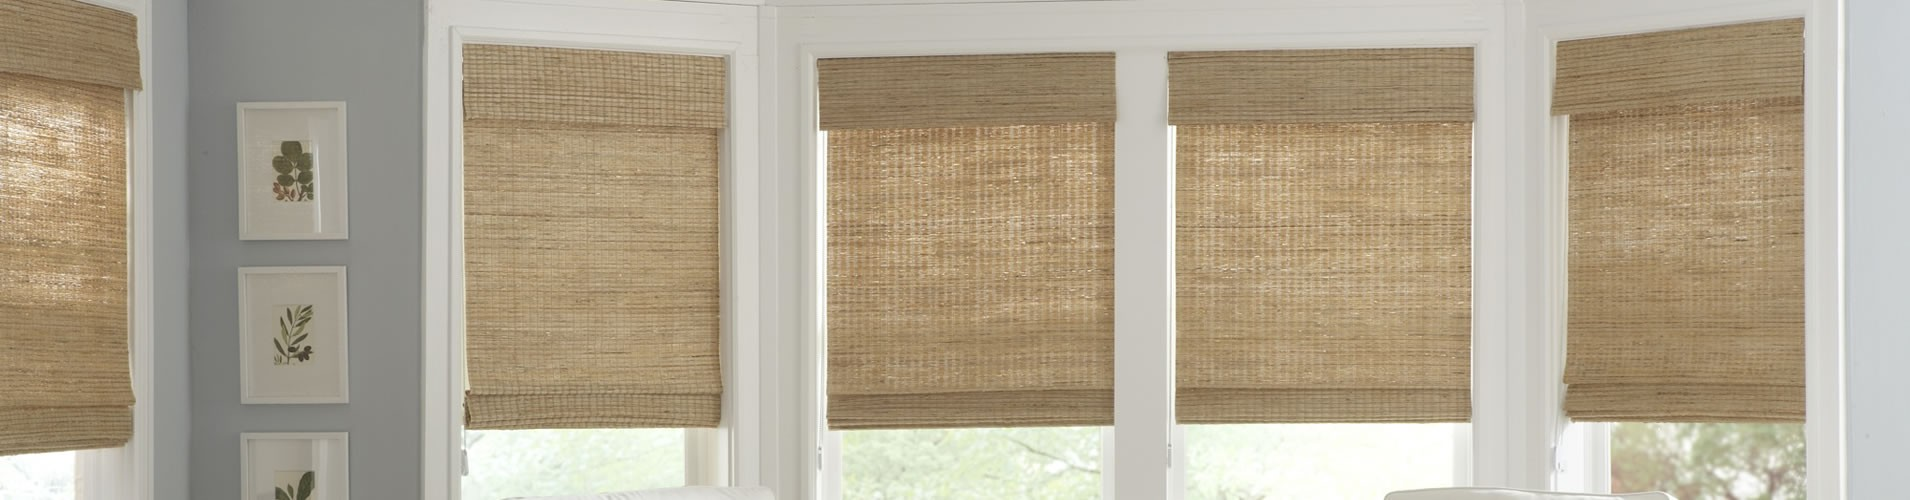 Custom Roman Shades, Houston, TX